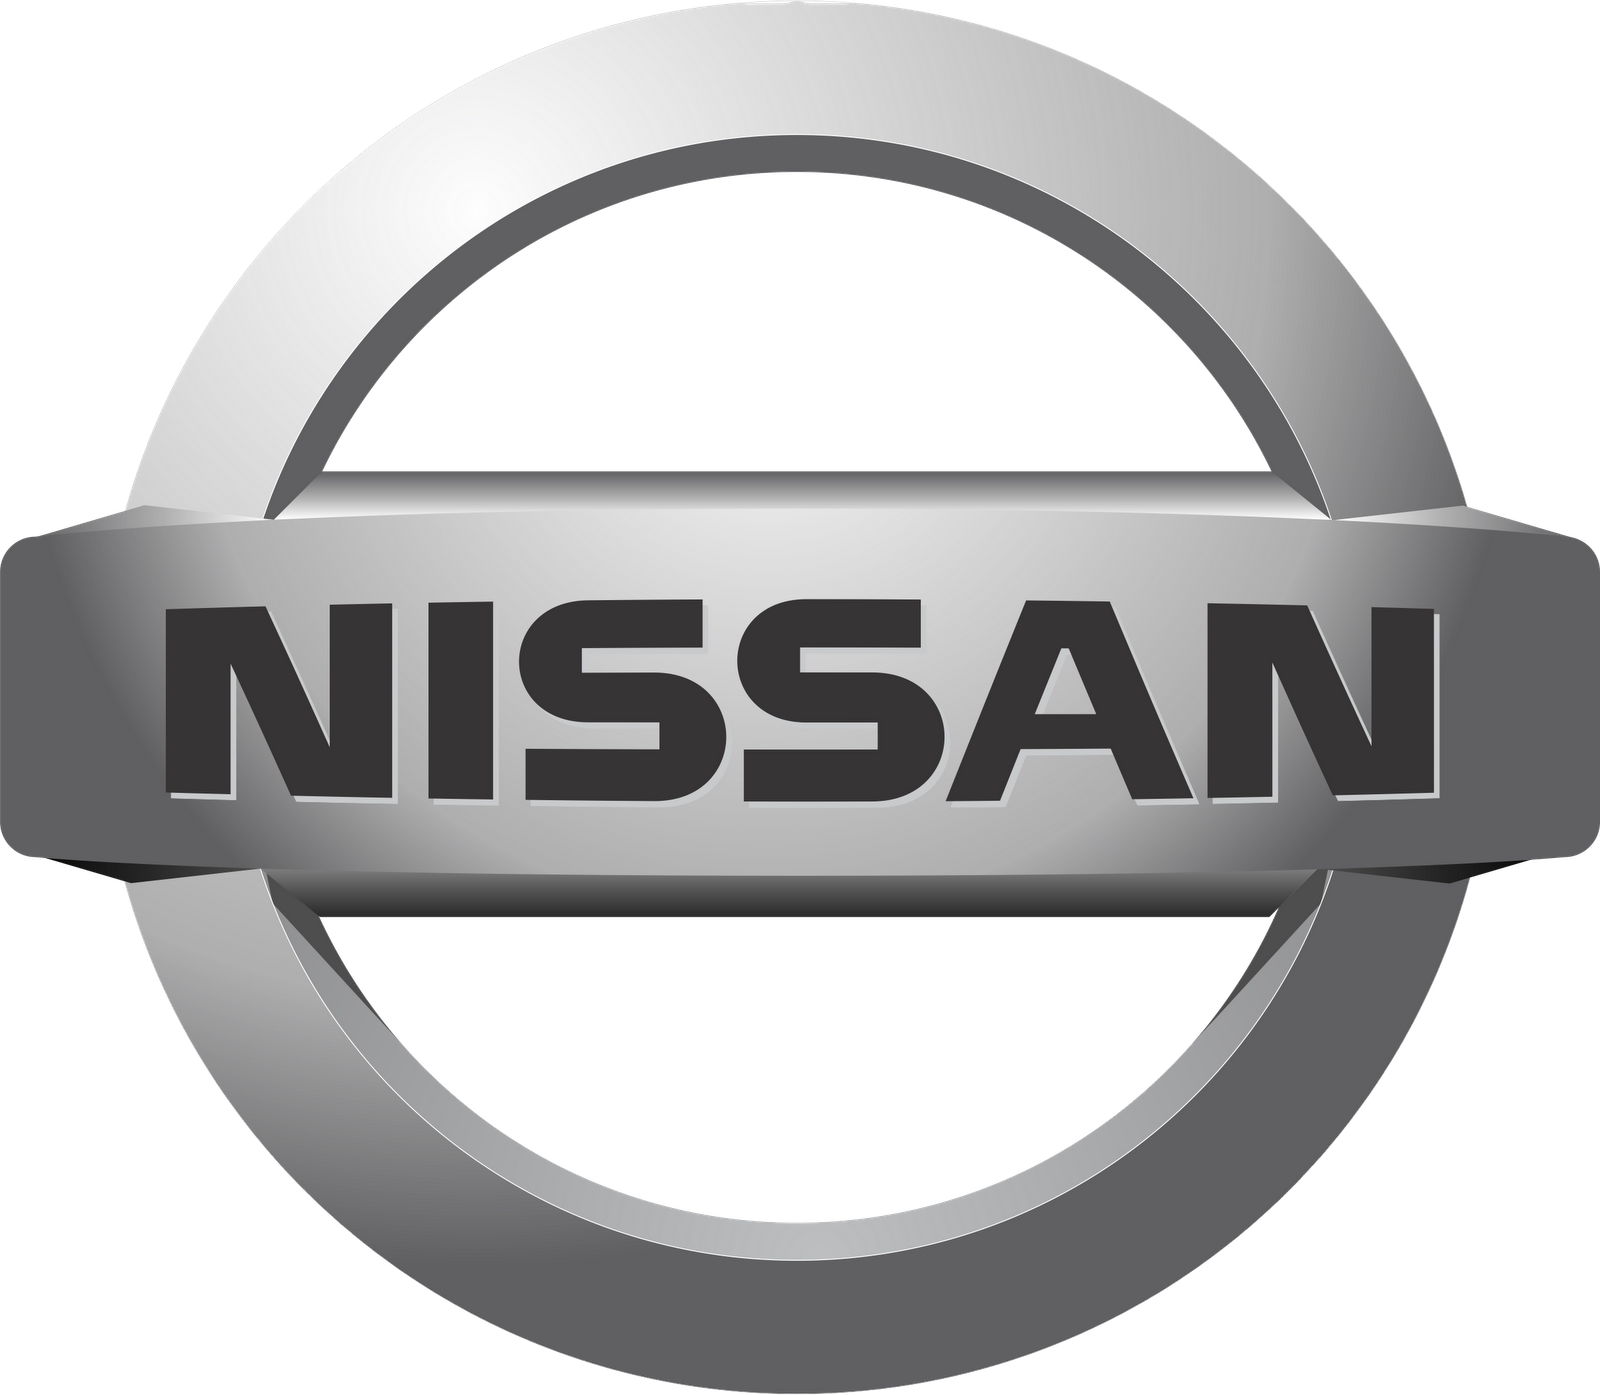 Logo Nissan Png Www Imgkid Com The Image Kid Has It